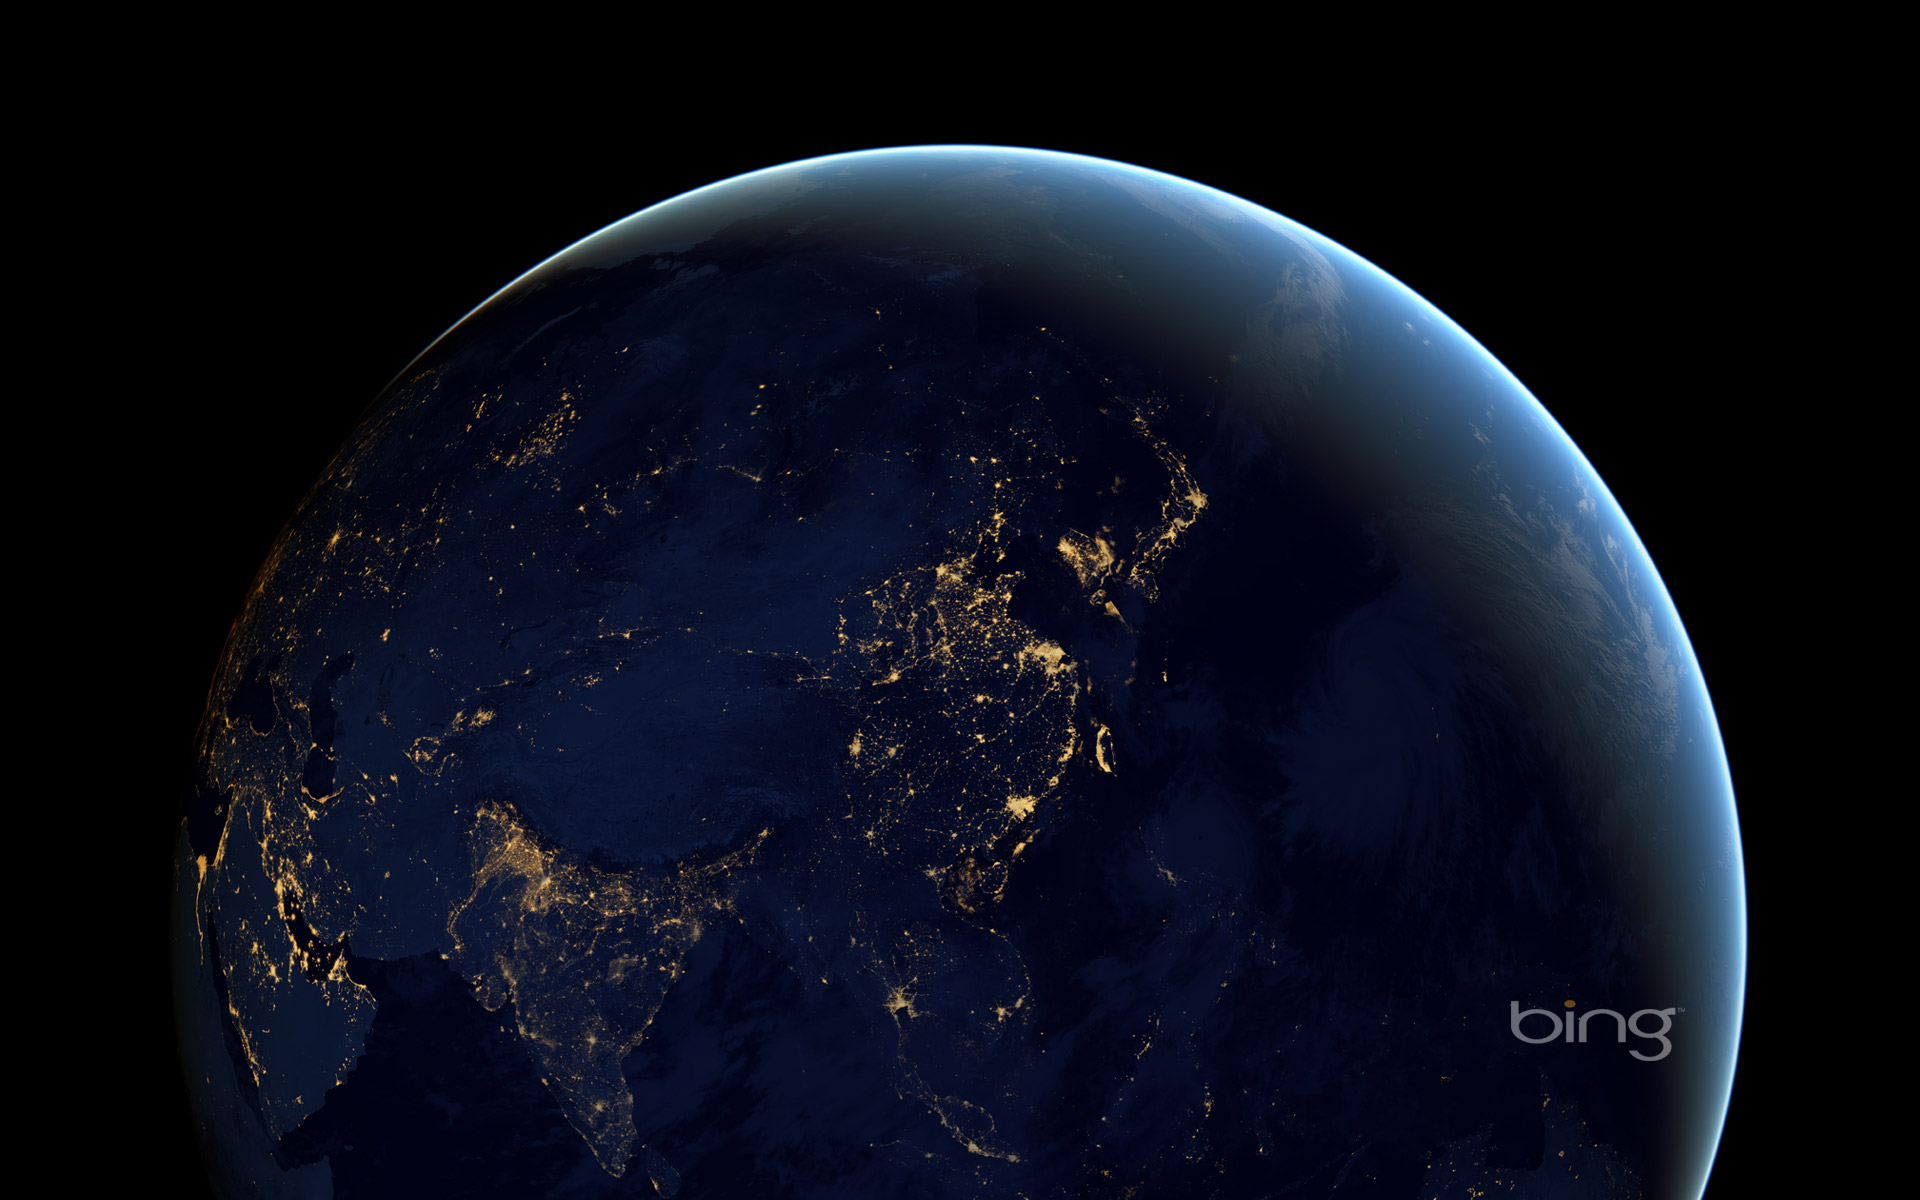 Composite image of Earth at night from space